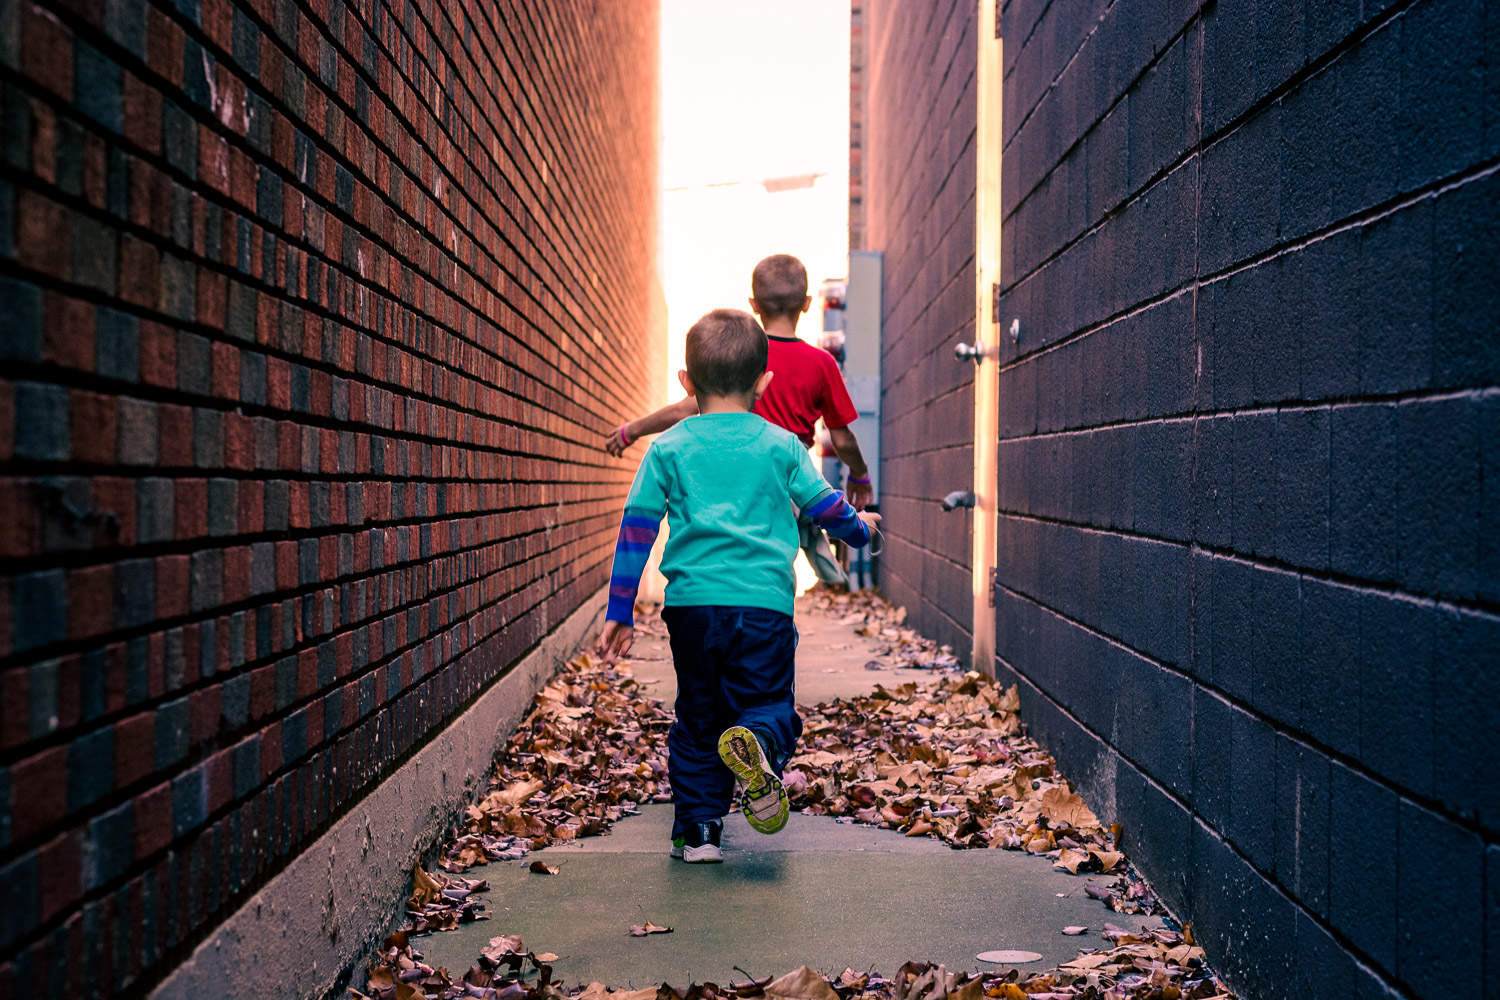 Lightroom Color Grading kids running alley